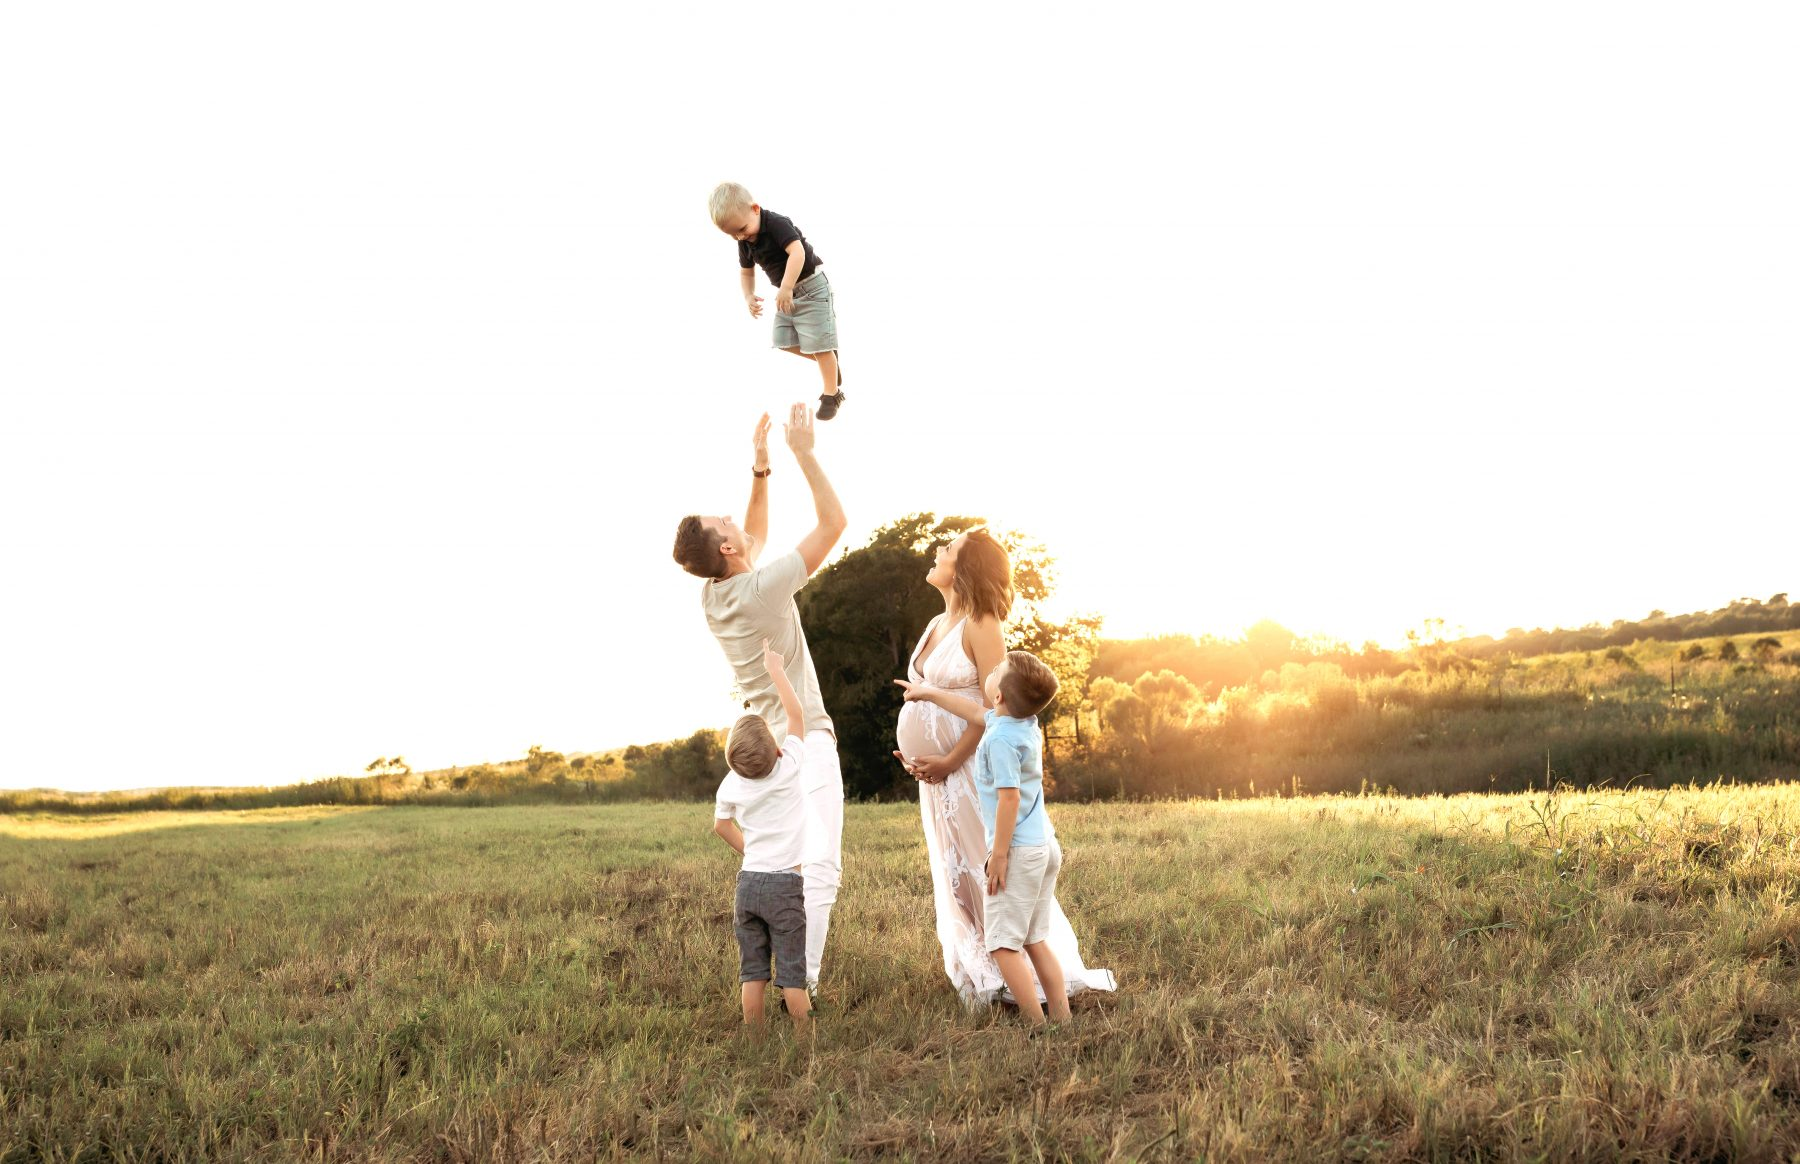 Houston lifestyle blogger Elly Brown shares her outdoor family maternity photos